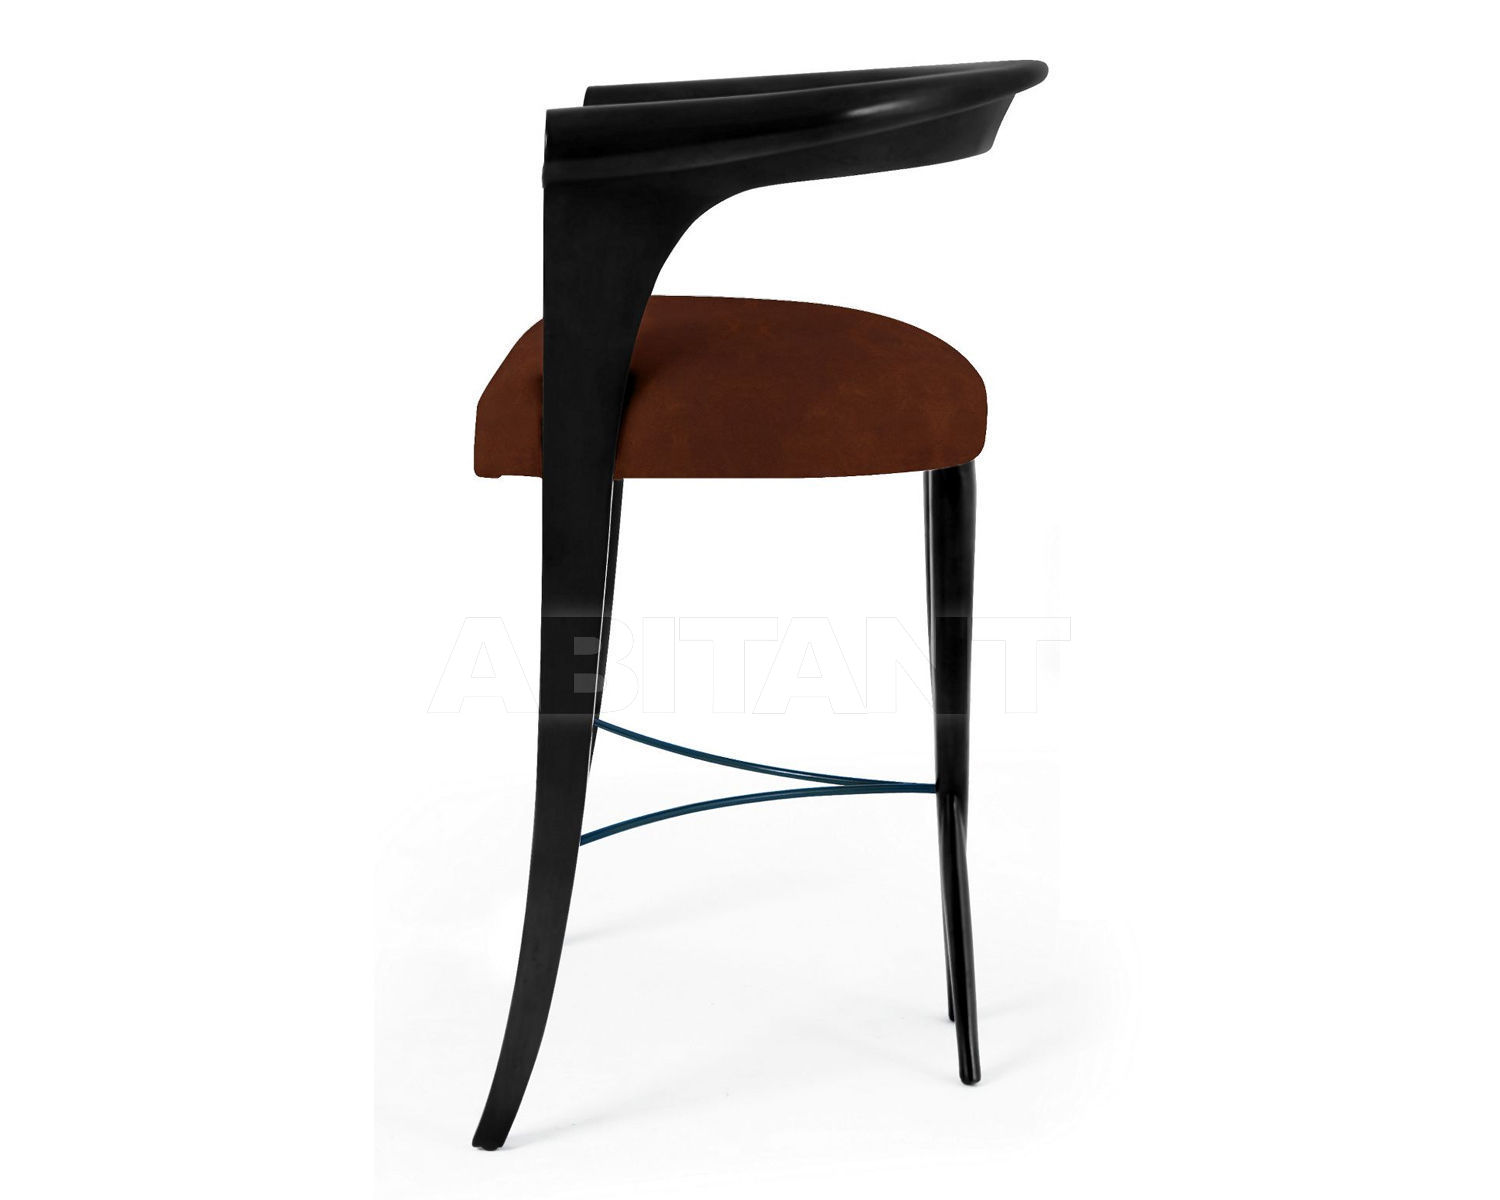 Superb Bar Stool Xaviera Black Christopher Guy 60 0023 Leather Onthecornerstone Fun Painted Chair Ideas Images Onthecornerstoneorg